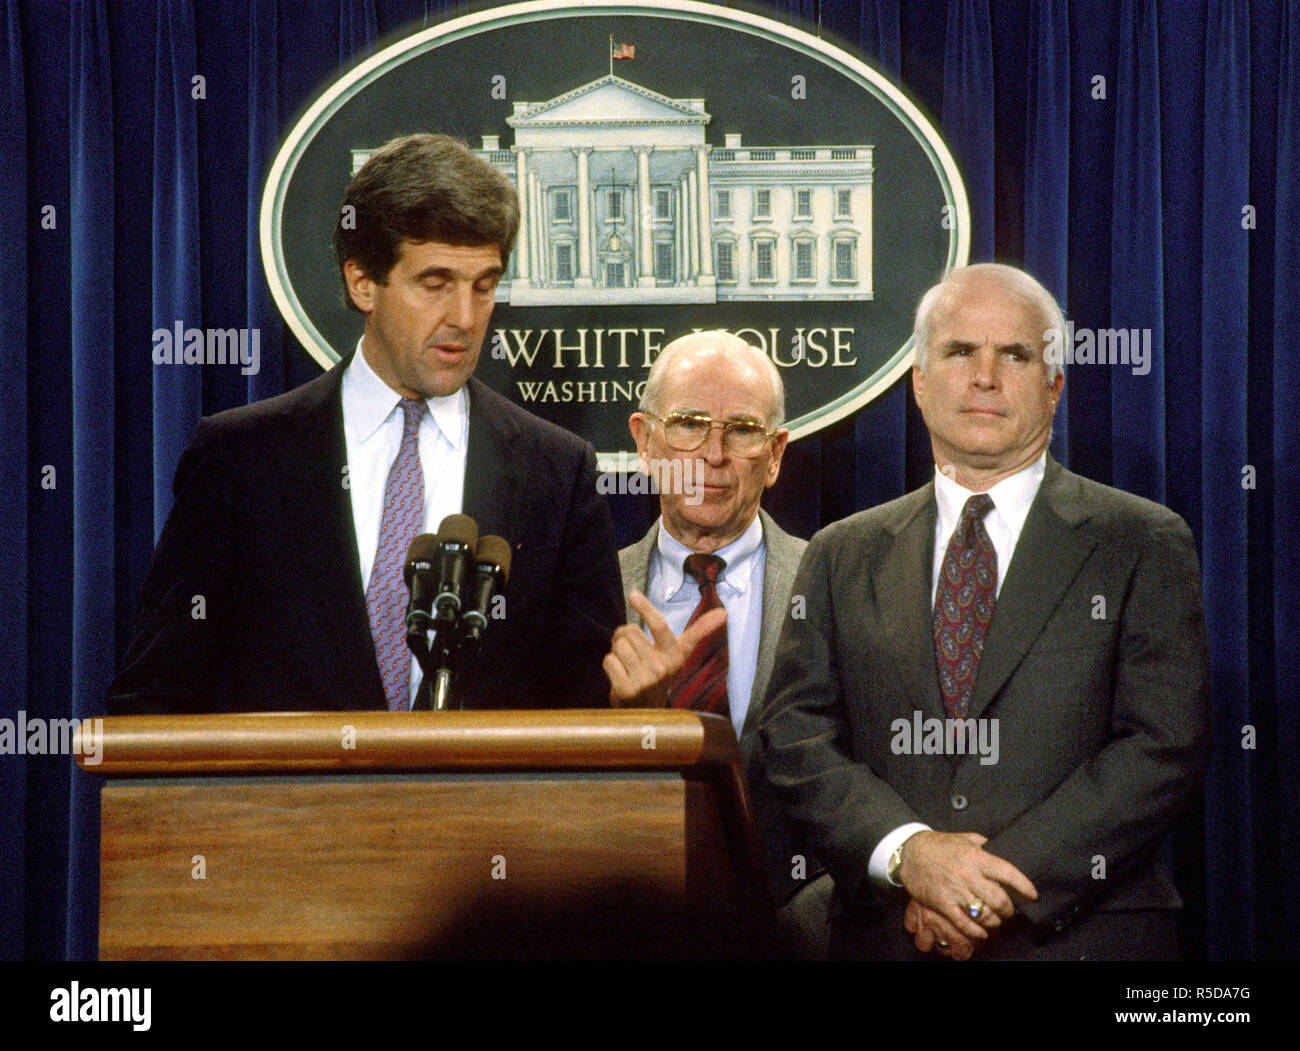 ***FILE PHOTO*** George H.W. Bush Has Passed Away Washington, DC - (FILE) -- United States Senator John F. Kerry (Democrat of Massachusetts), left, retired United States Army General John Vessey, former chairman of the Joint Chiefs of Staff, and Special Emissary to Vietnam for P.O.W./M.I.A. affairs, center, and United States Senator John McCain (Republican of Arizona), right, meet reporters in the White House Press Briefing Room after United States President George H.W. Bush announced the Government of Vietnam had agreed to make available all information including photographs, artifacts, and m - Stock Image